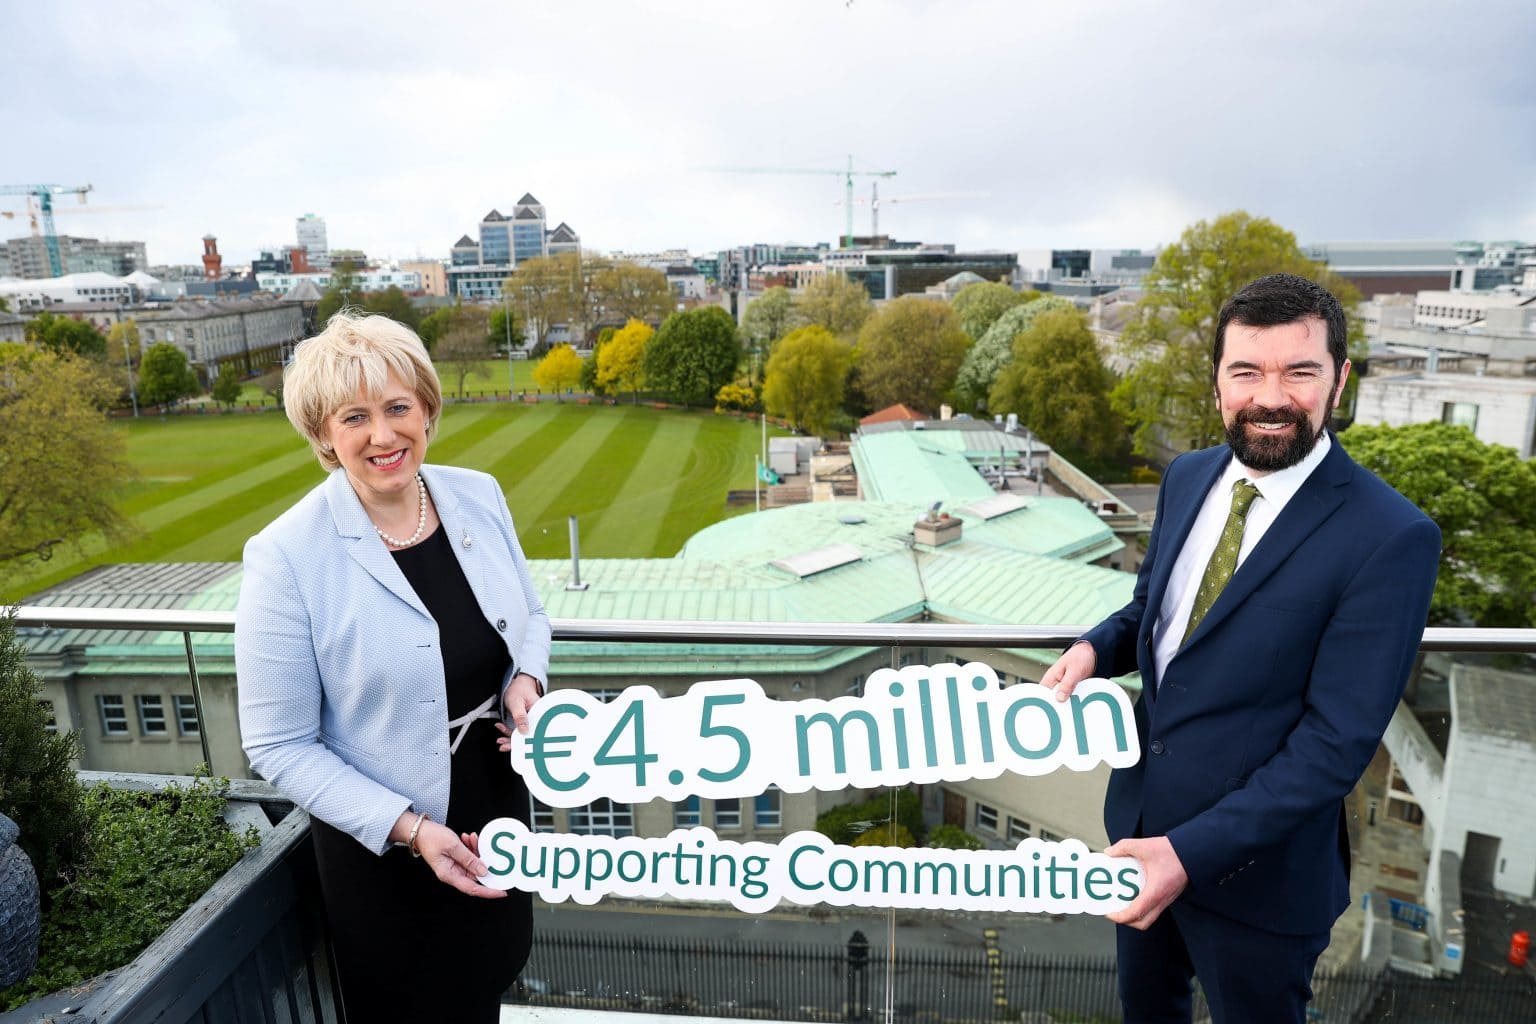 Ministers Humphreys and O'Brien announce €4.5 million to improve community facilities